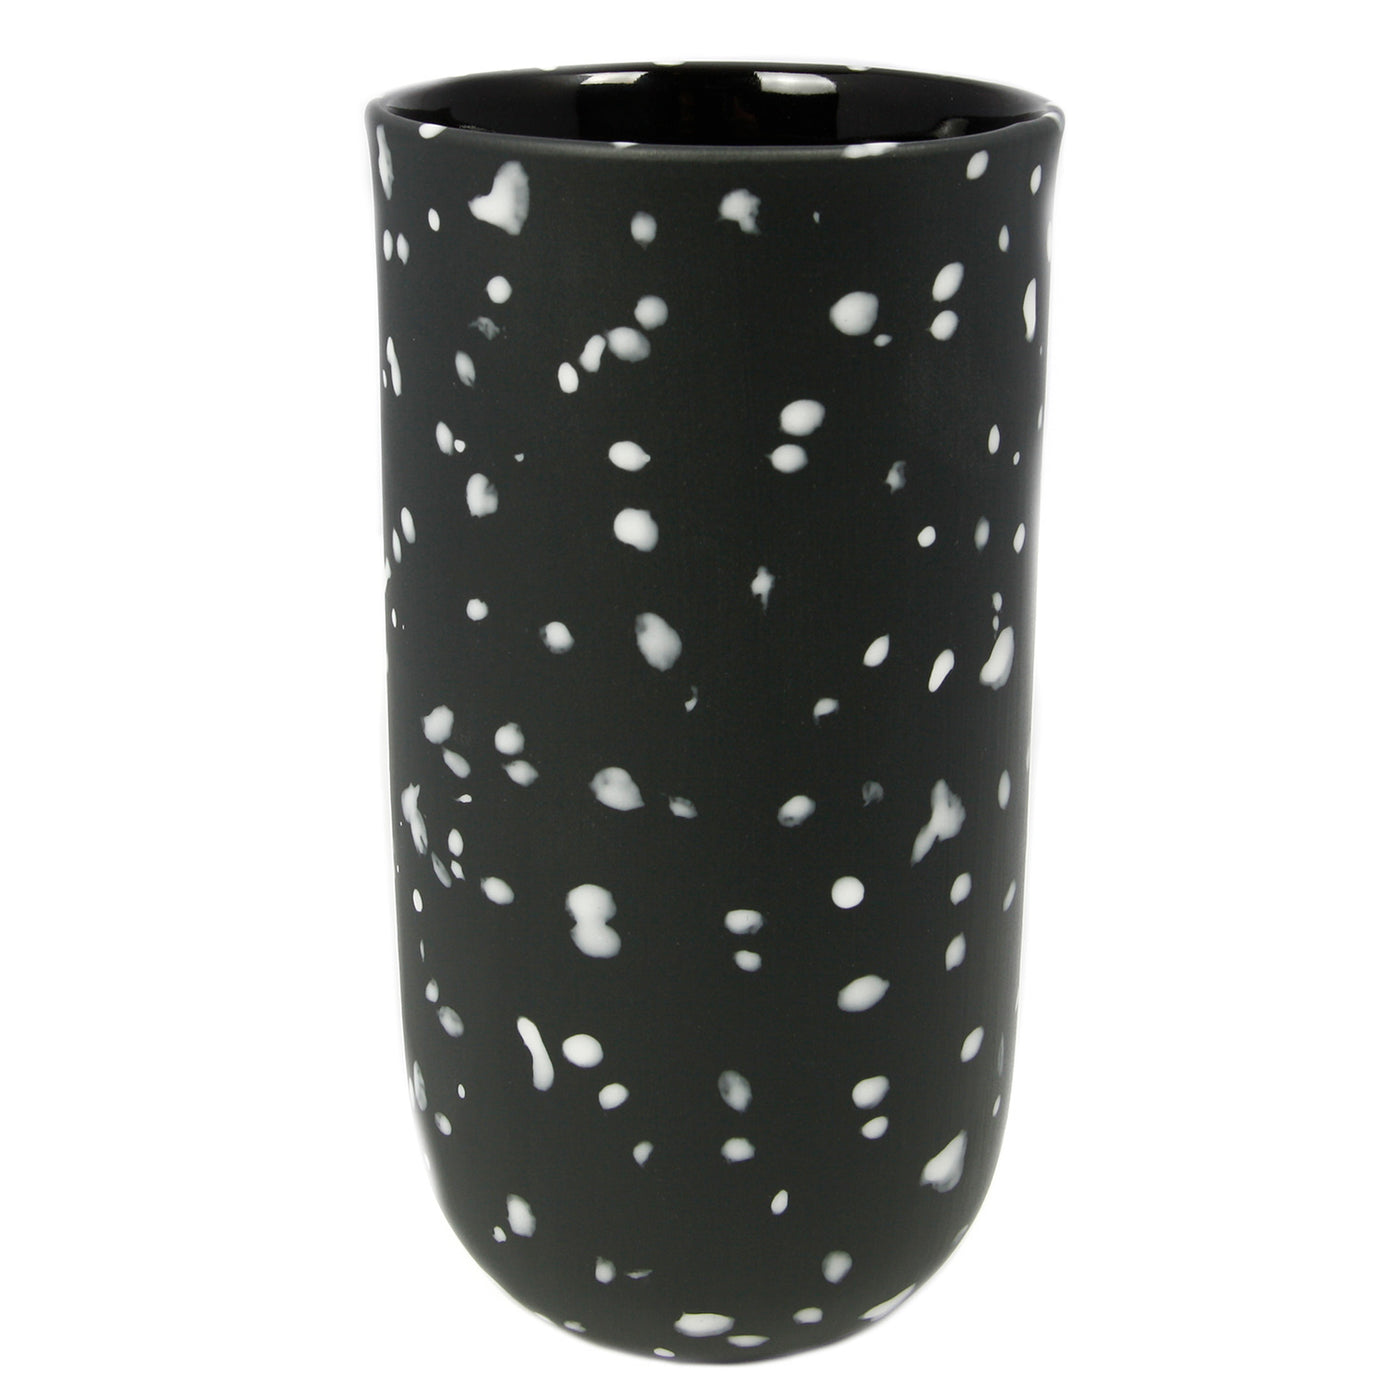 Black Speckled Vase